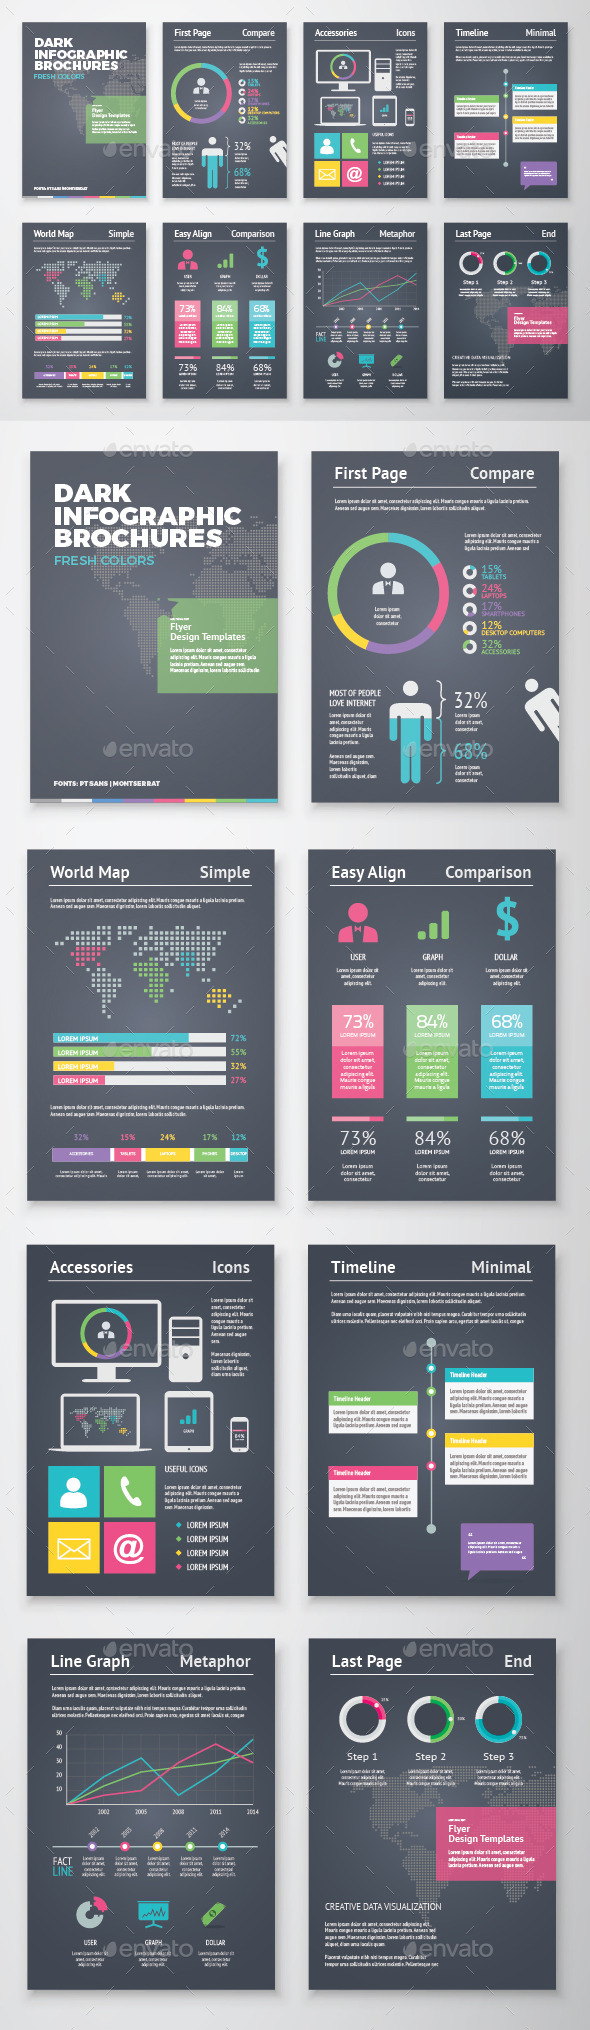 GraphicRiver Dark Infographic Brochure Vector Elements Kit 2 11432174